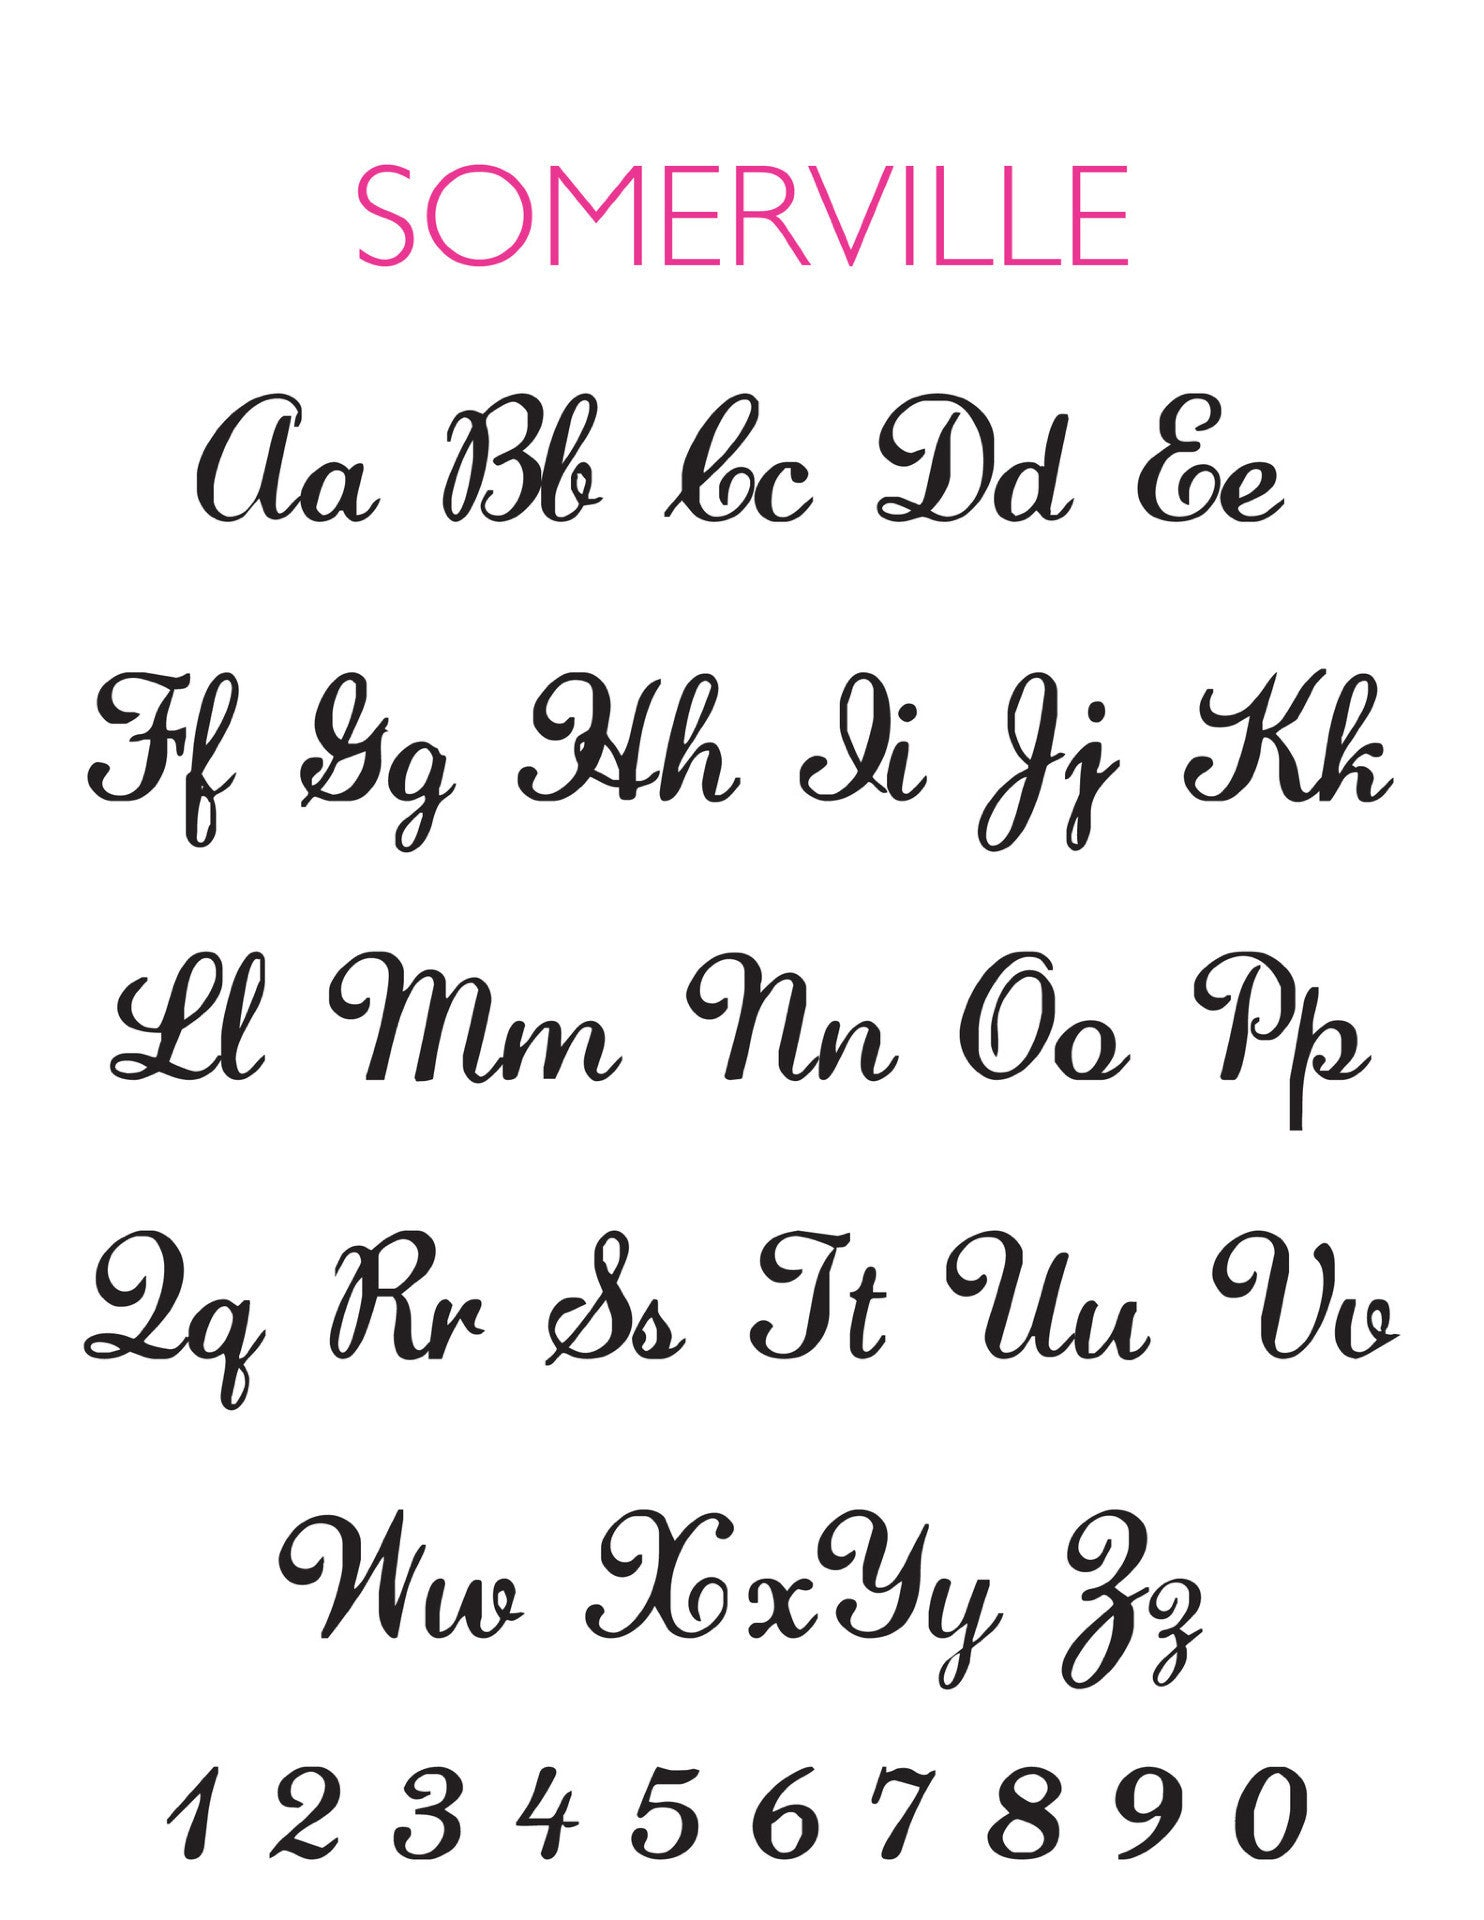 I found this at #moonandlola! - Somerville Font Chart